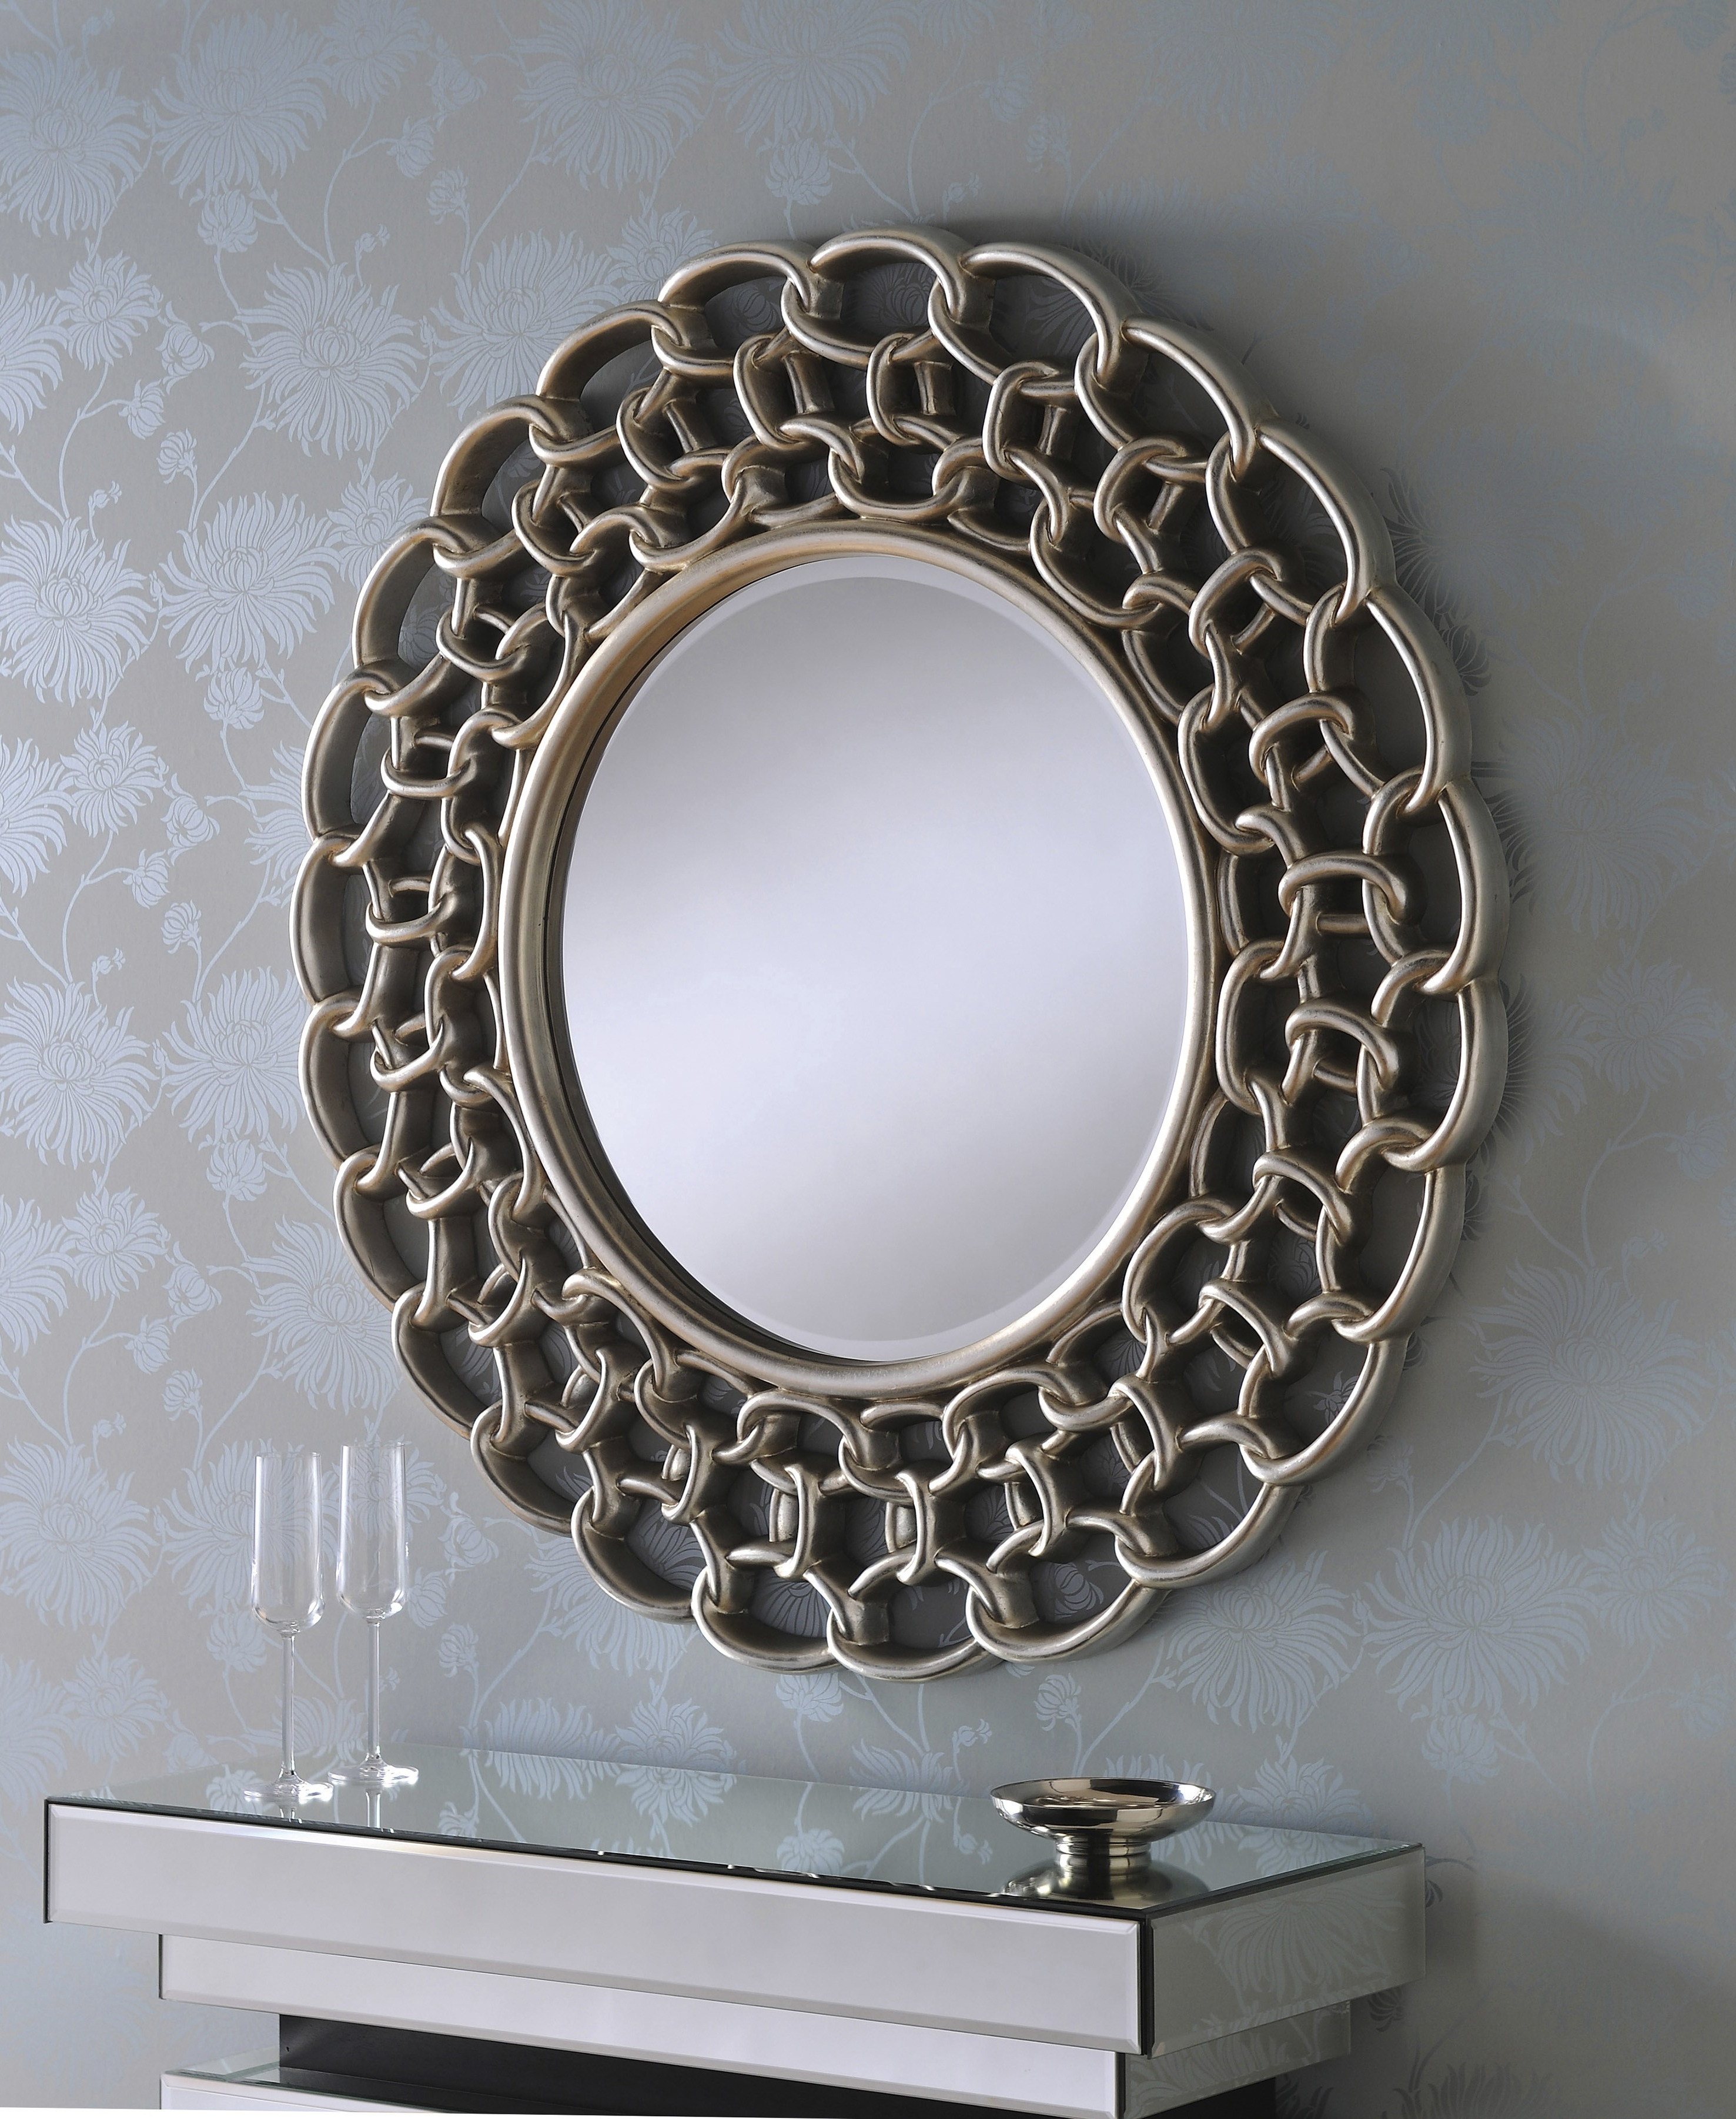 Verona Large Round Silver Linked Chain Framed Wall Mirror Pertaining To Famous Round Silver Wall Mirrors (View 15 of 20)